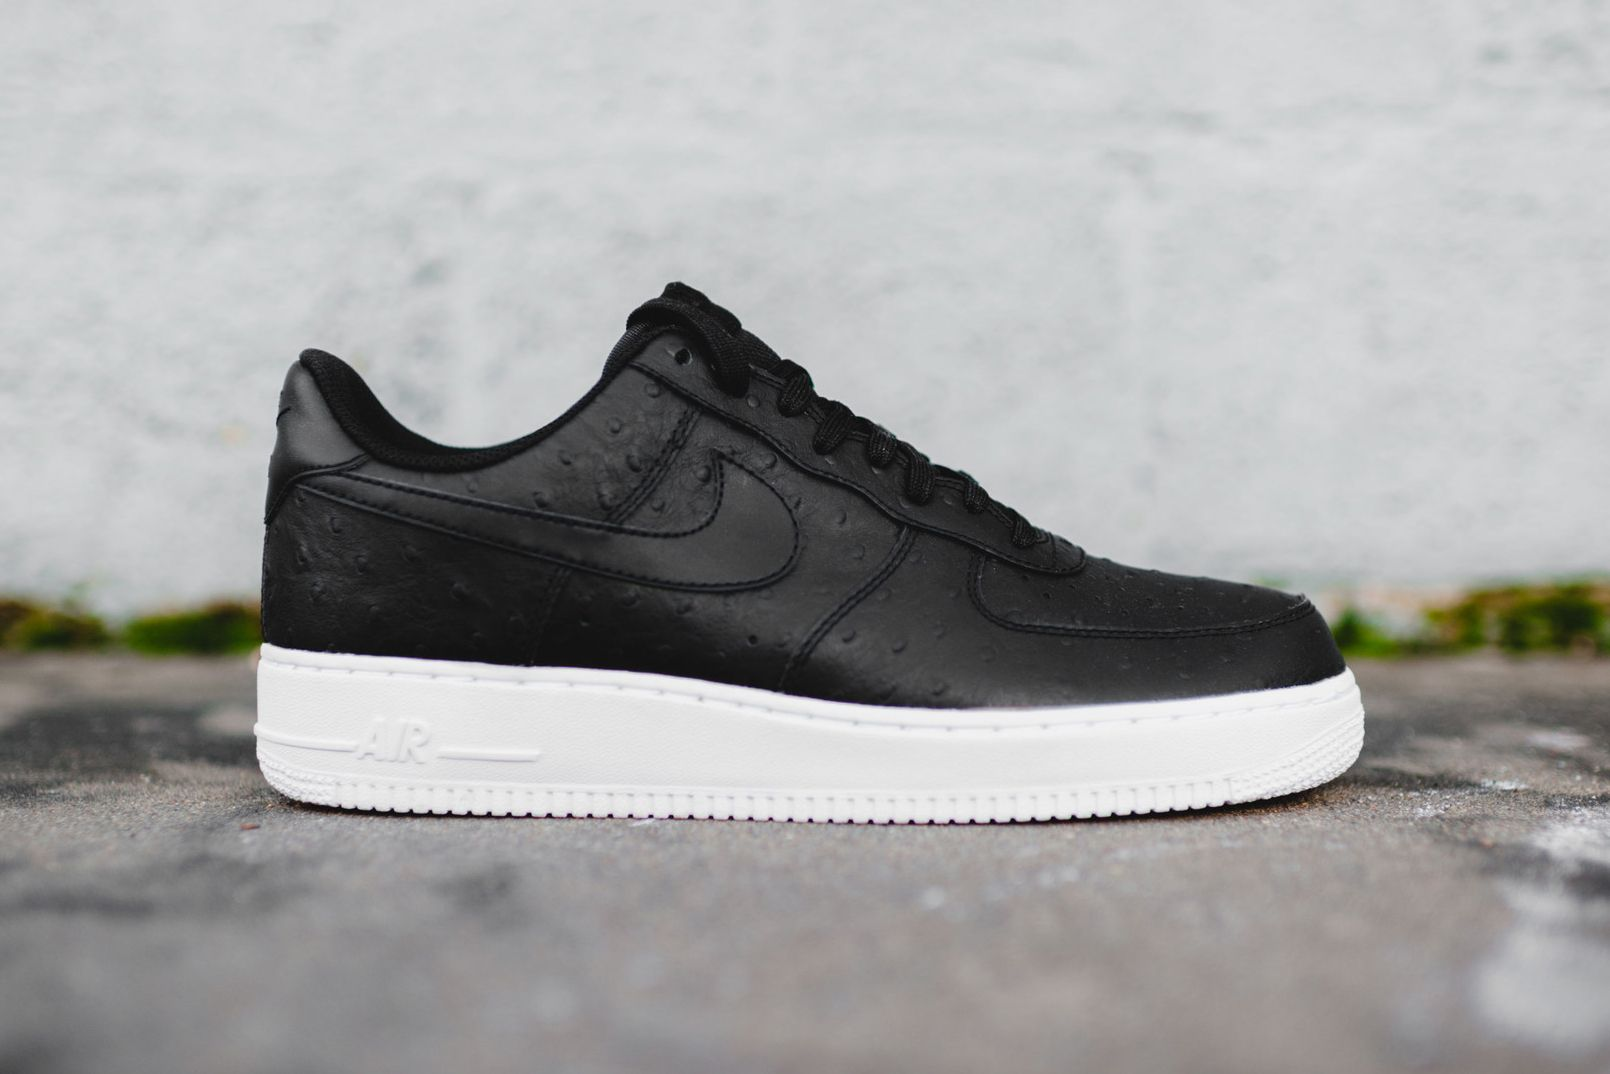 This New Nike Air Force 1 '07 LV8 Is